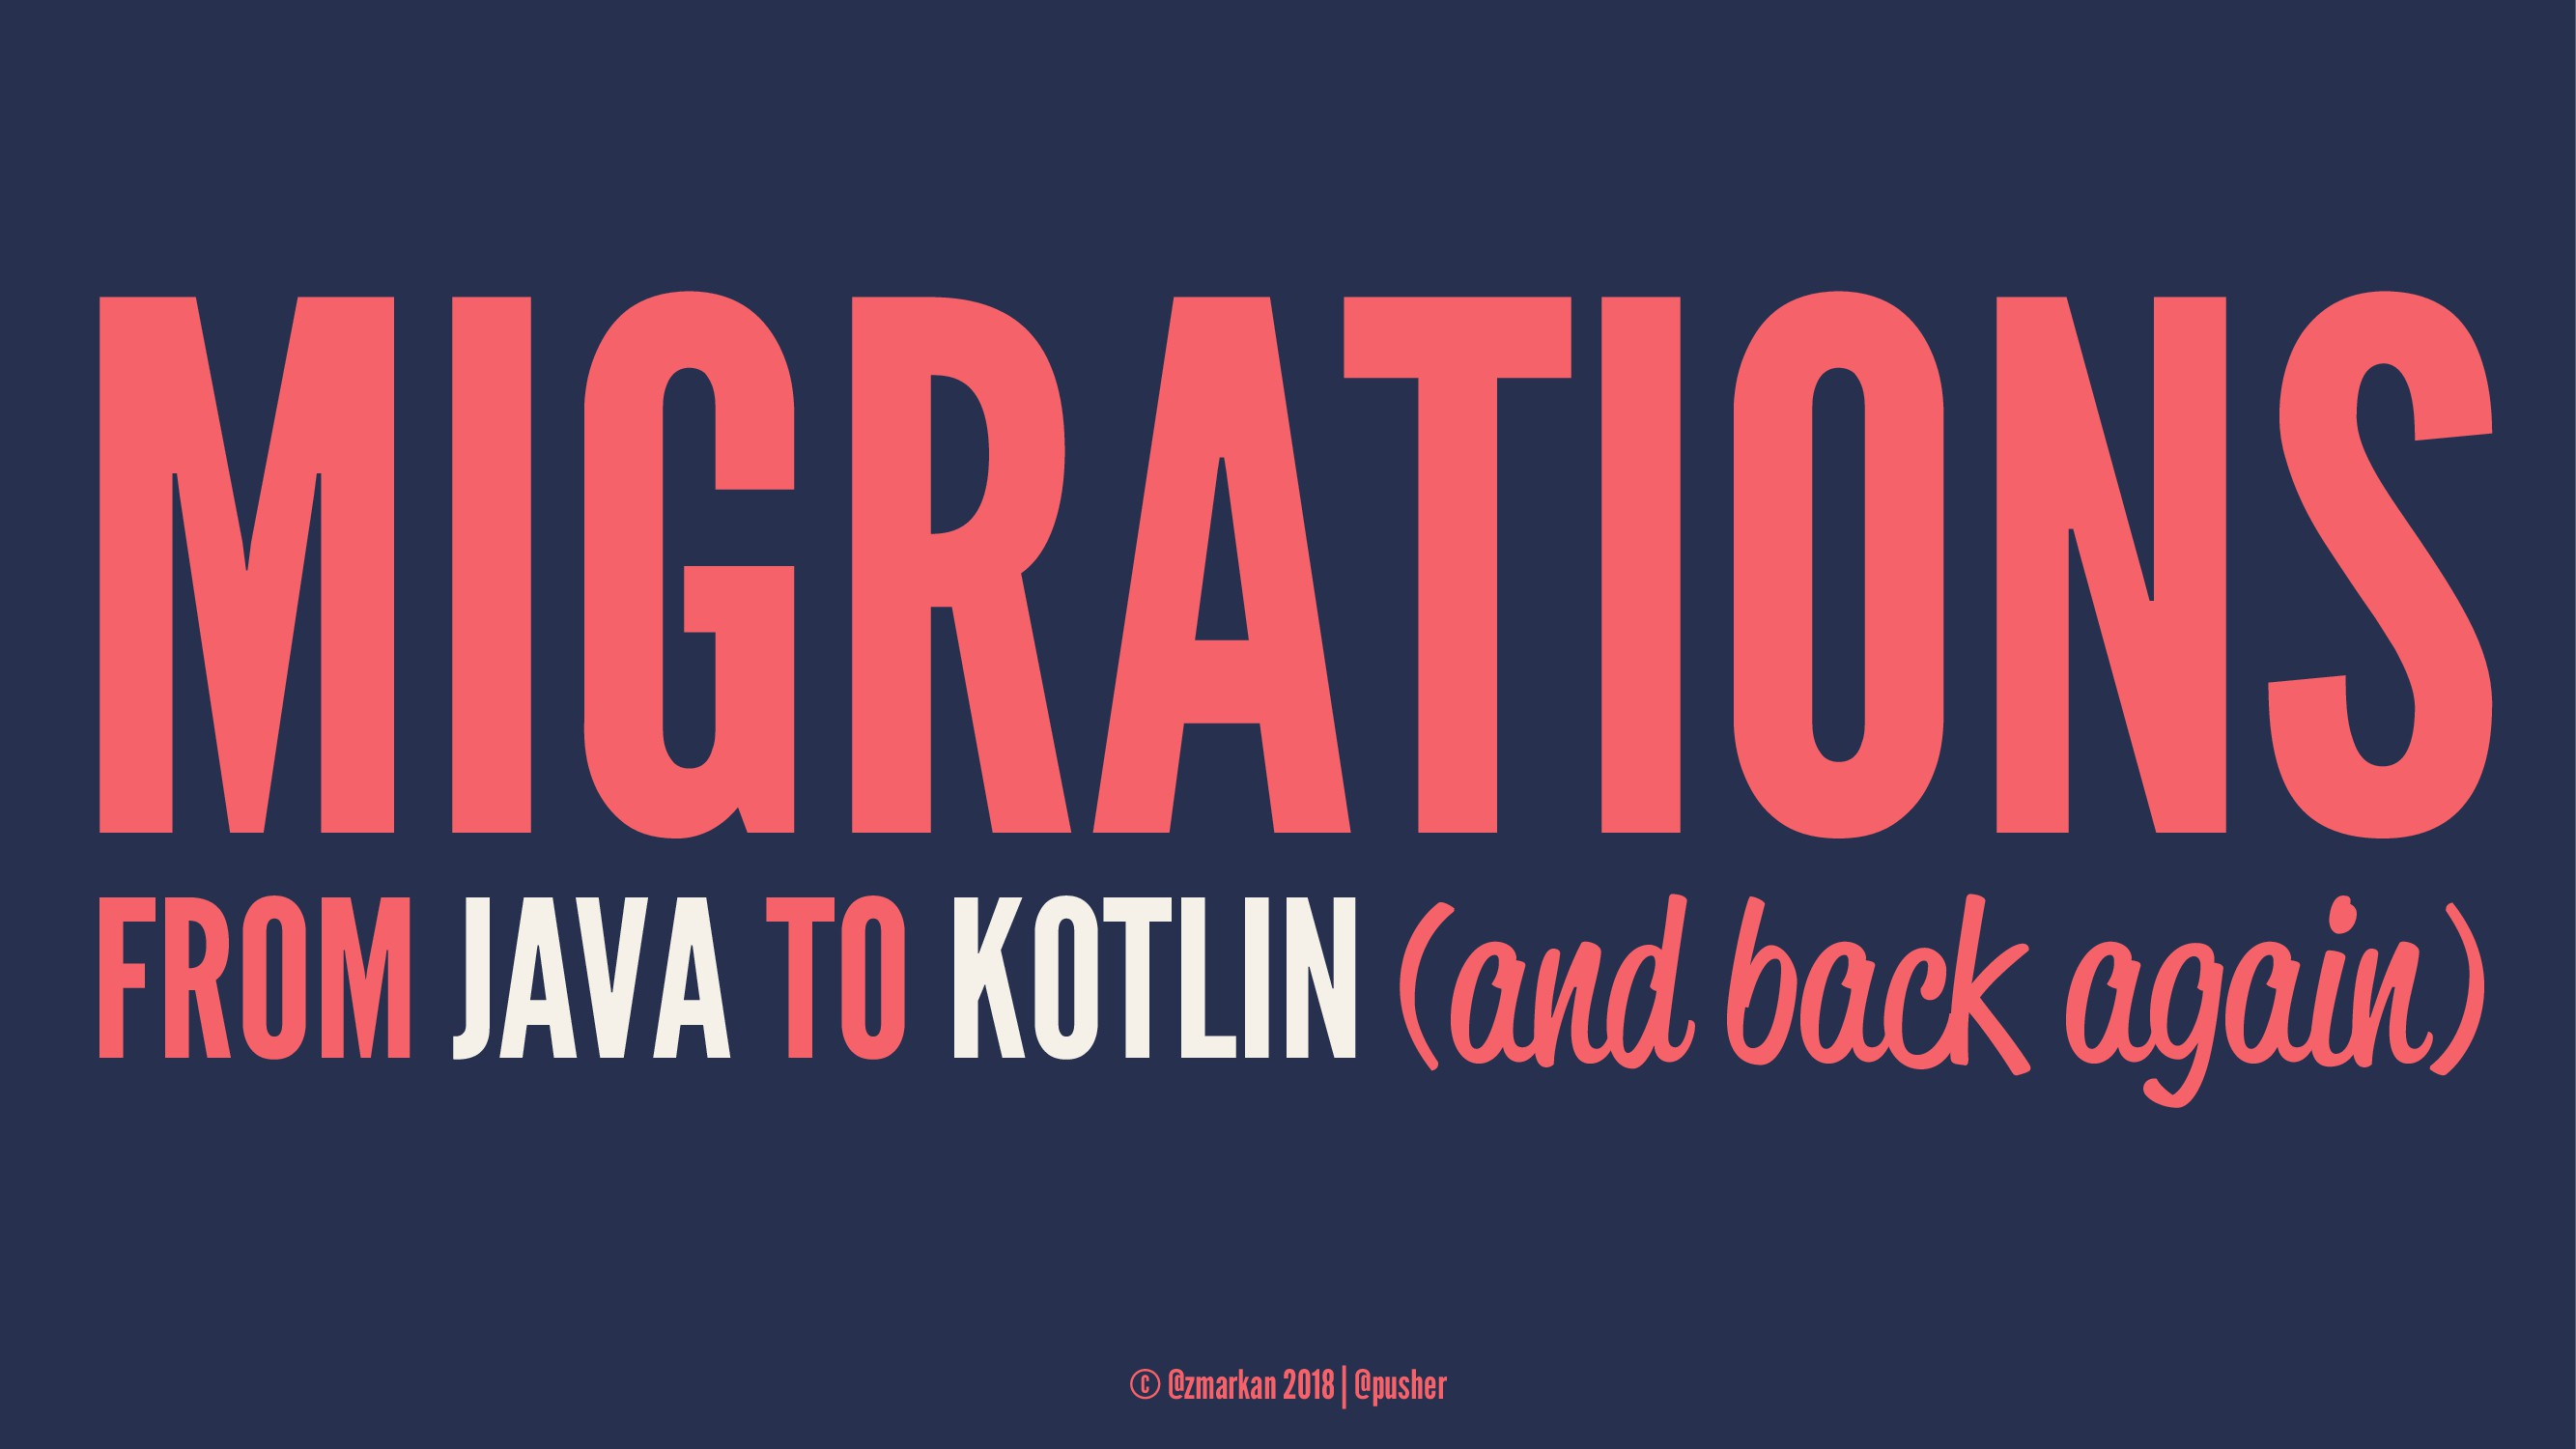 MIGRATIONS FROM JAVA TO KOTLIN (and back again)...